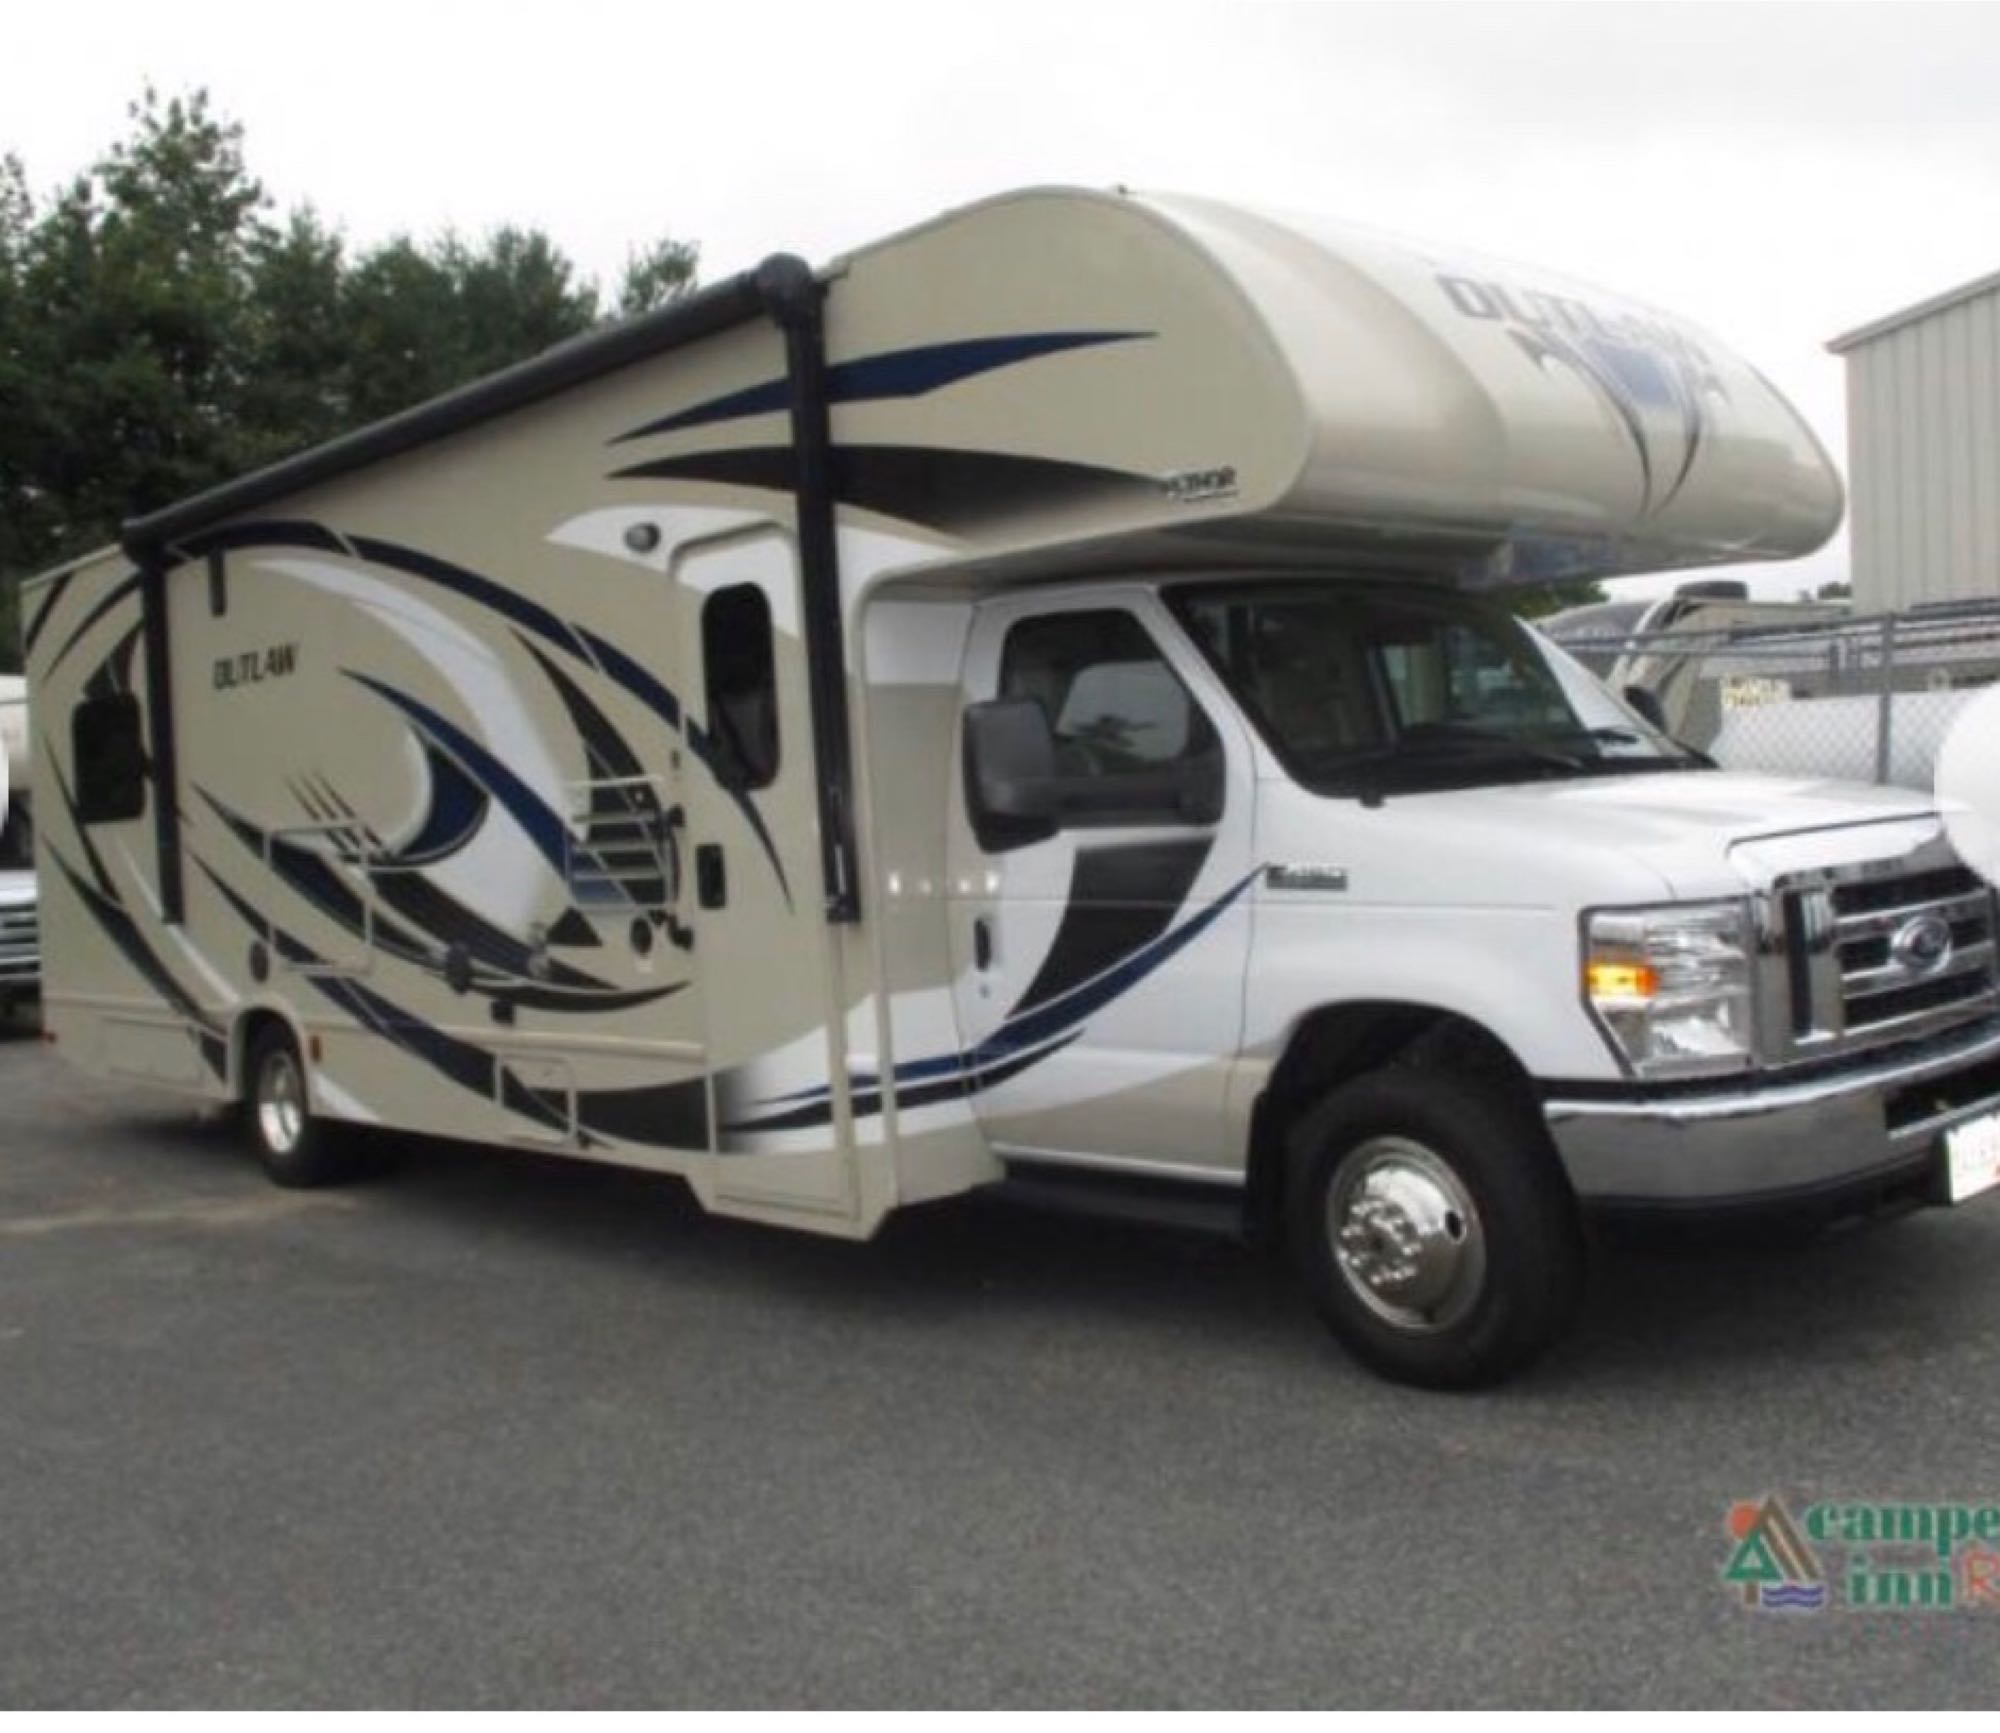 This Outlaw is a wicked cool RV. Thor Motor Coach Outlaw toy hauler 2017